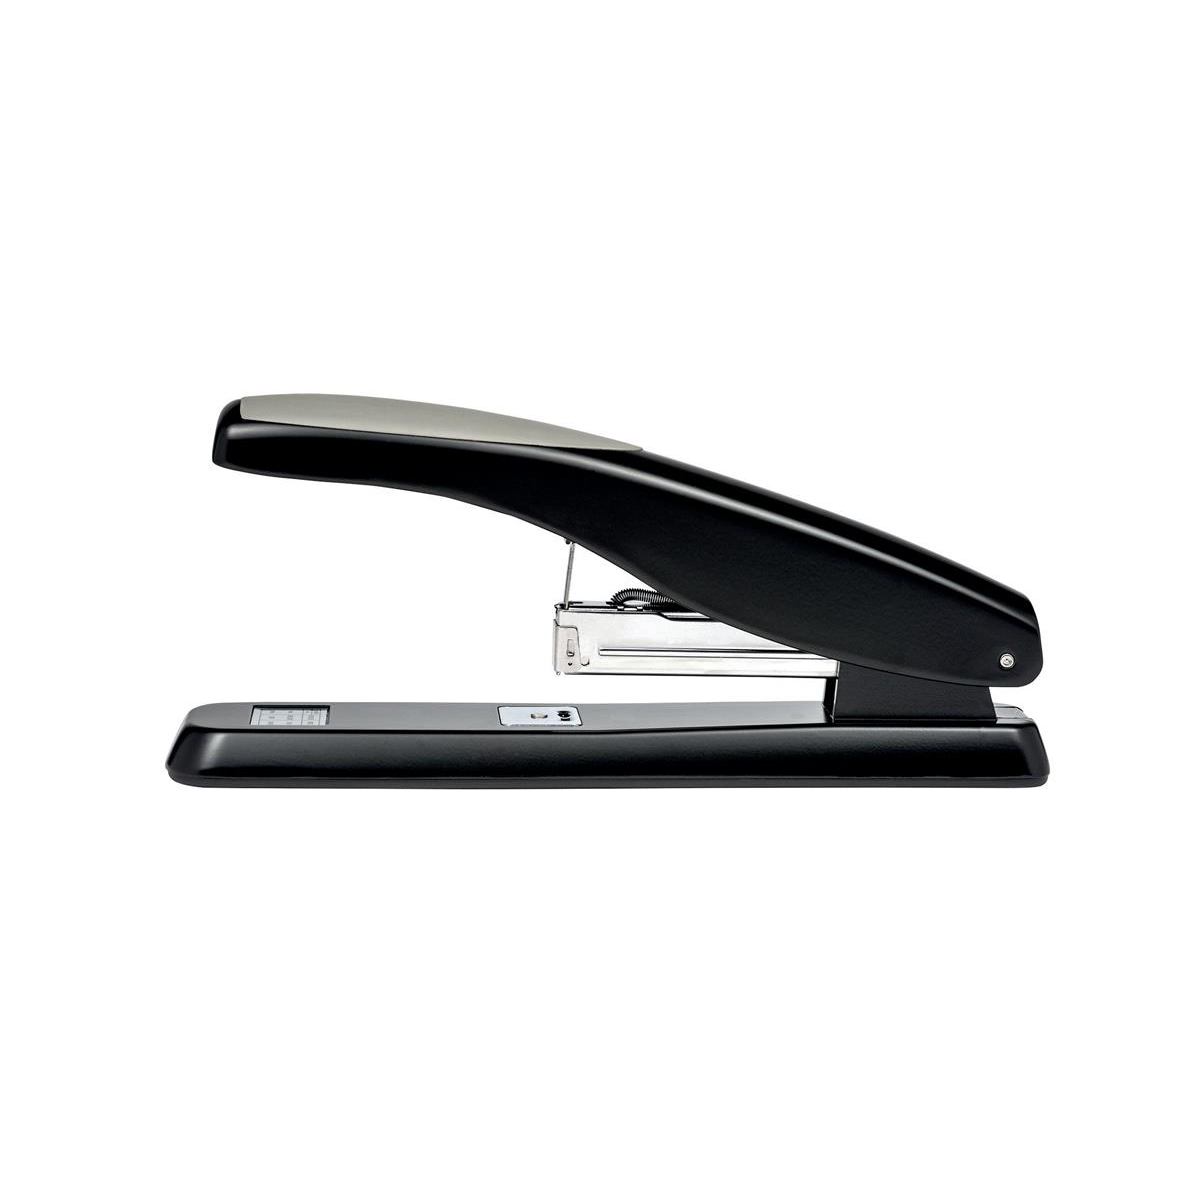 5 Star Office Multi-Purpose Long Handle Stapler 2-50 Sheet Capacity Takes 26/6 or 24/6 Staples Black